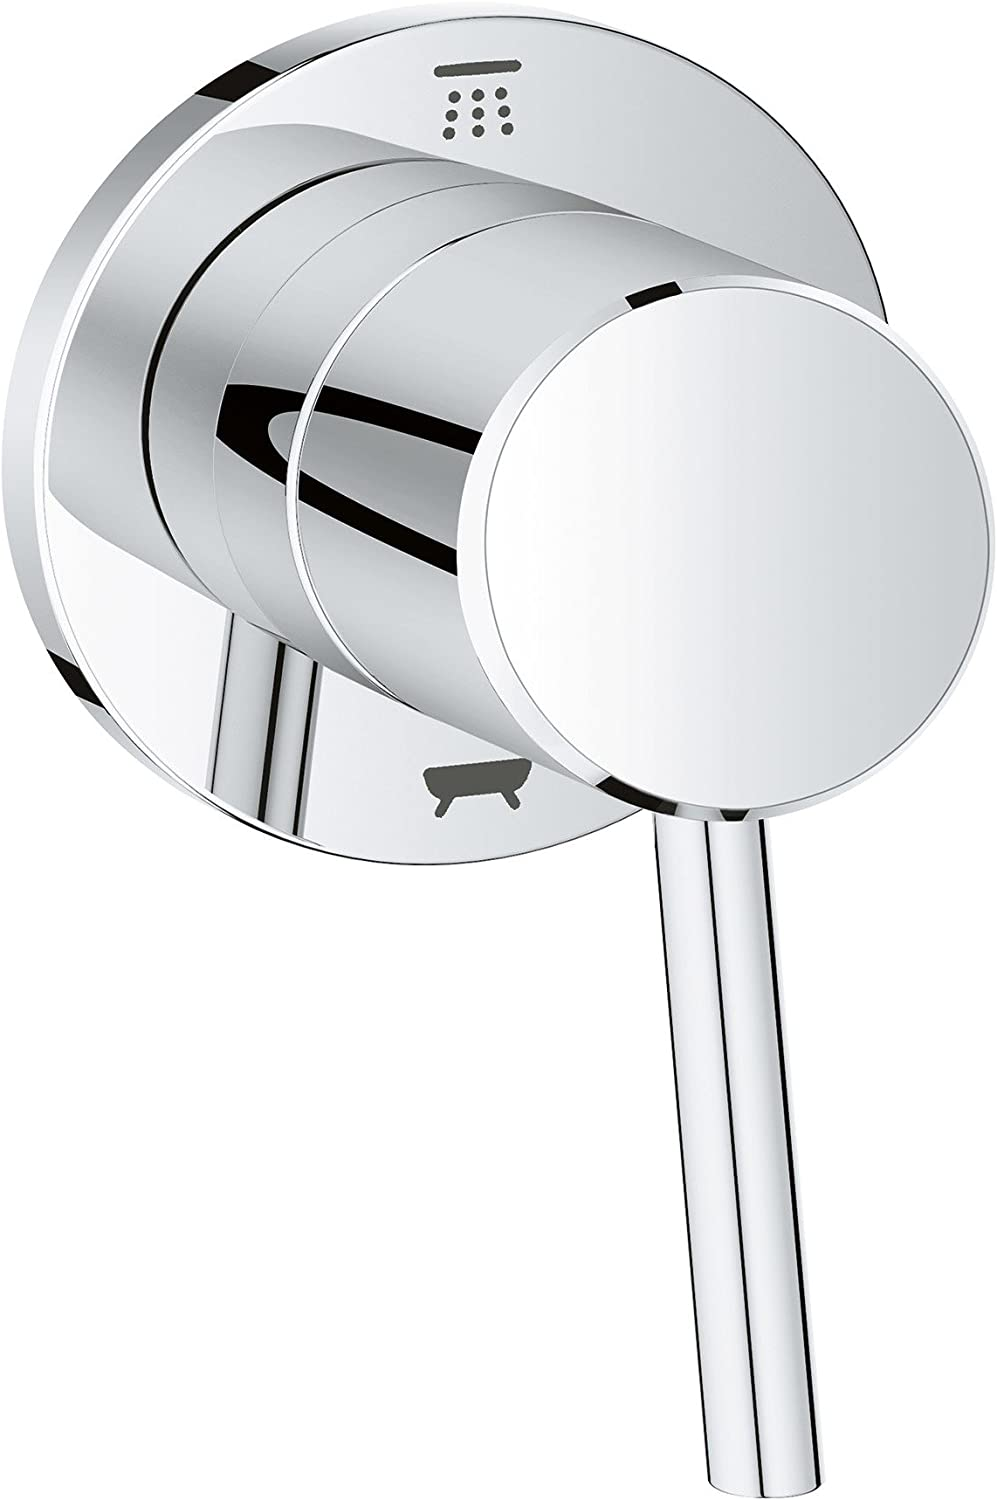 Grohe 29104001 Concetto 1-Handle Diverter Trim Kit bei Starlight Chrome (Valve Sold Separately)